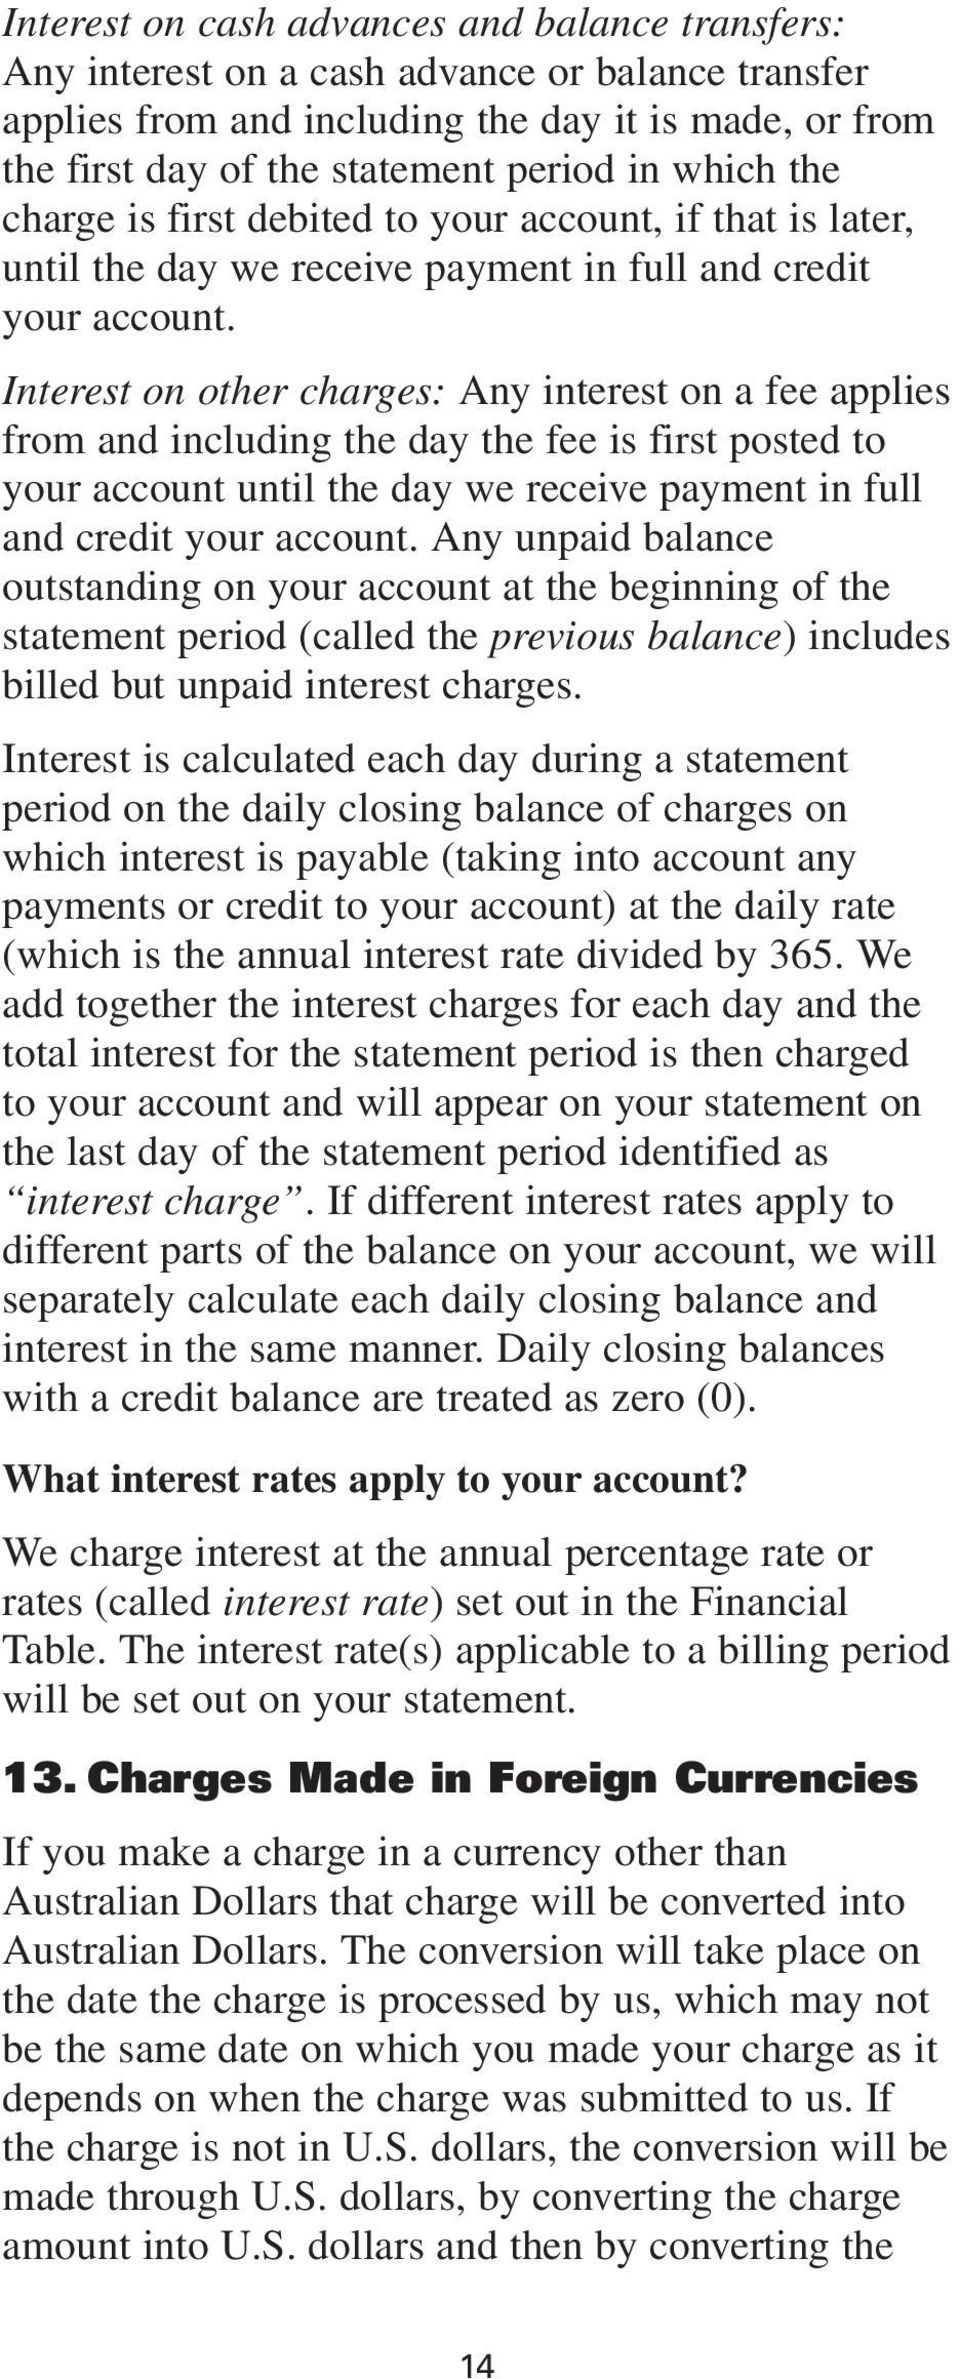 Interest on other charges: Any interest on a fee applies from and including the day the fee is first posted to your account until the day we receive payment in full and credit your account.